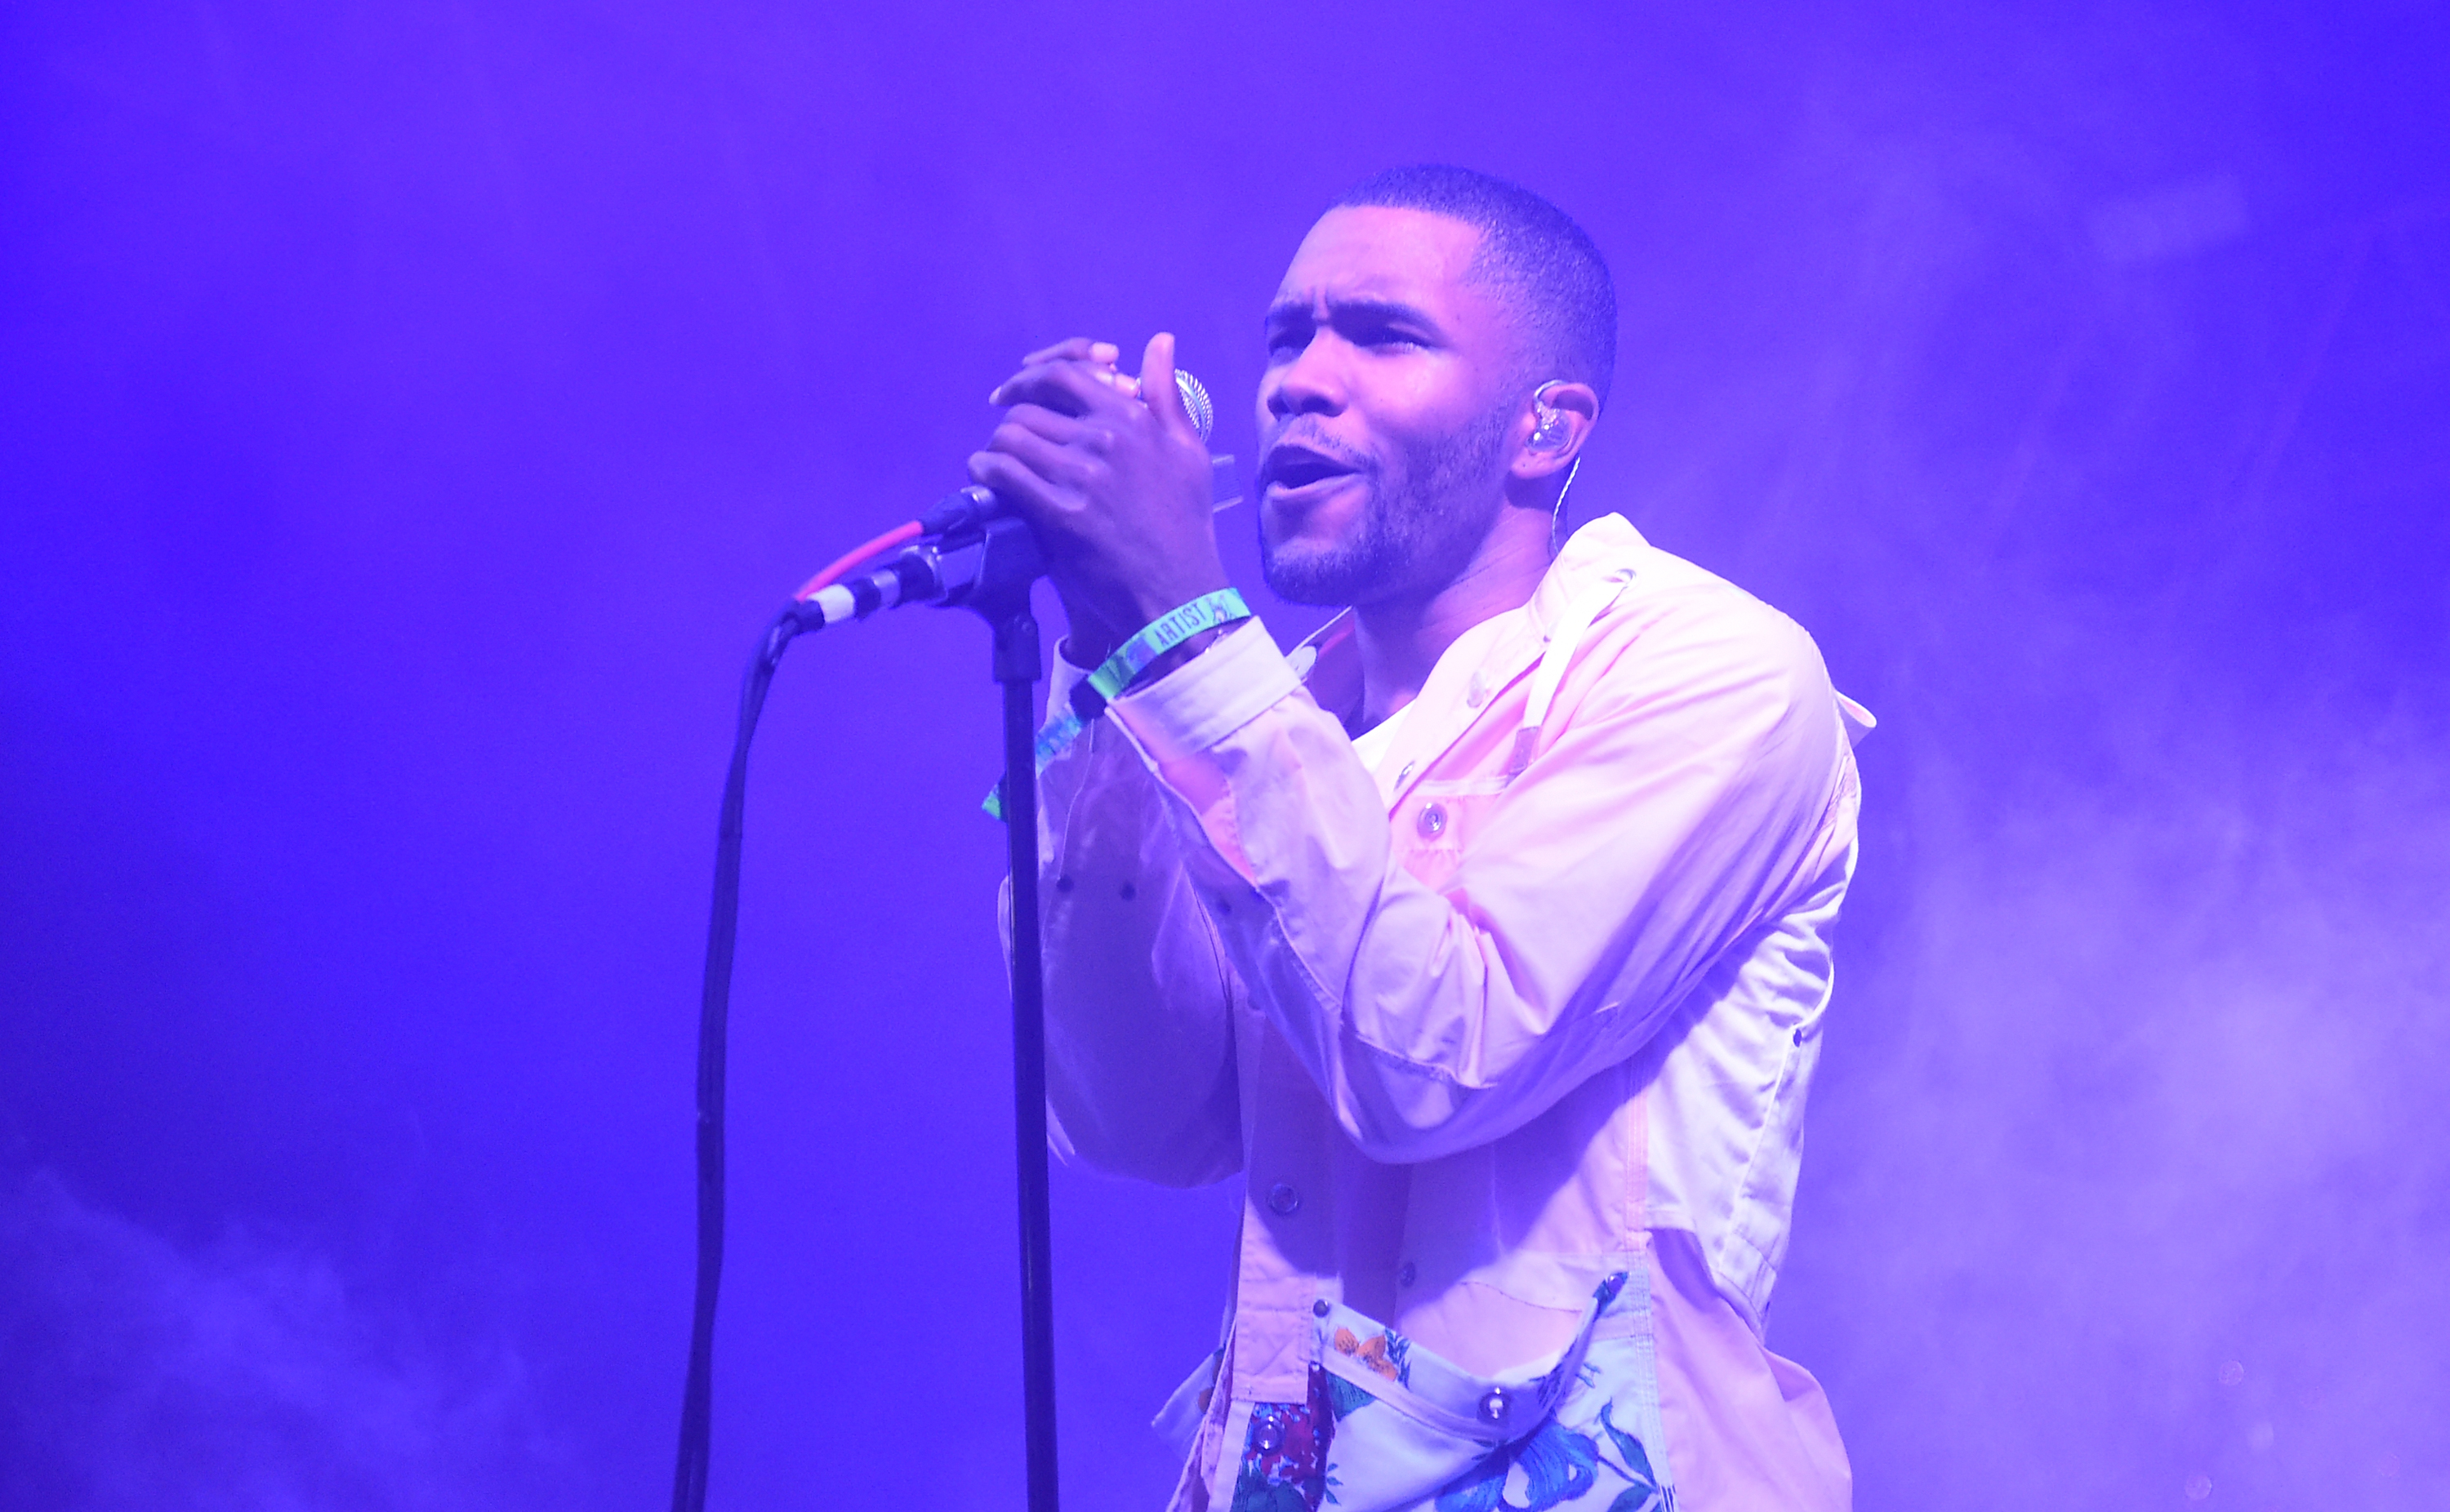 Artist Frank Ocean performs during the 2014 Bonnaroo Music Arts Festival in Manchester, Tennessee on June 14, 2014